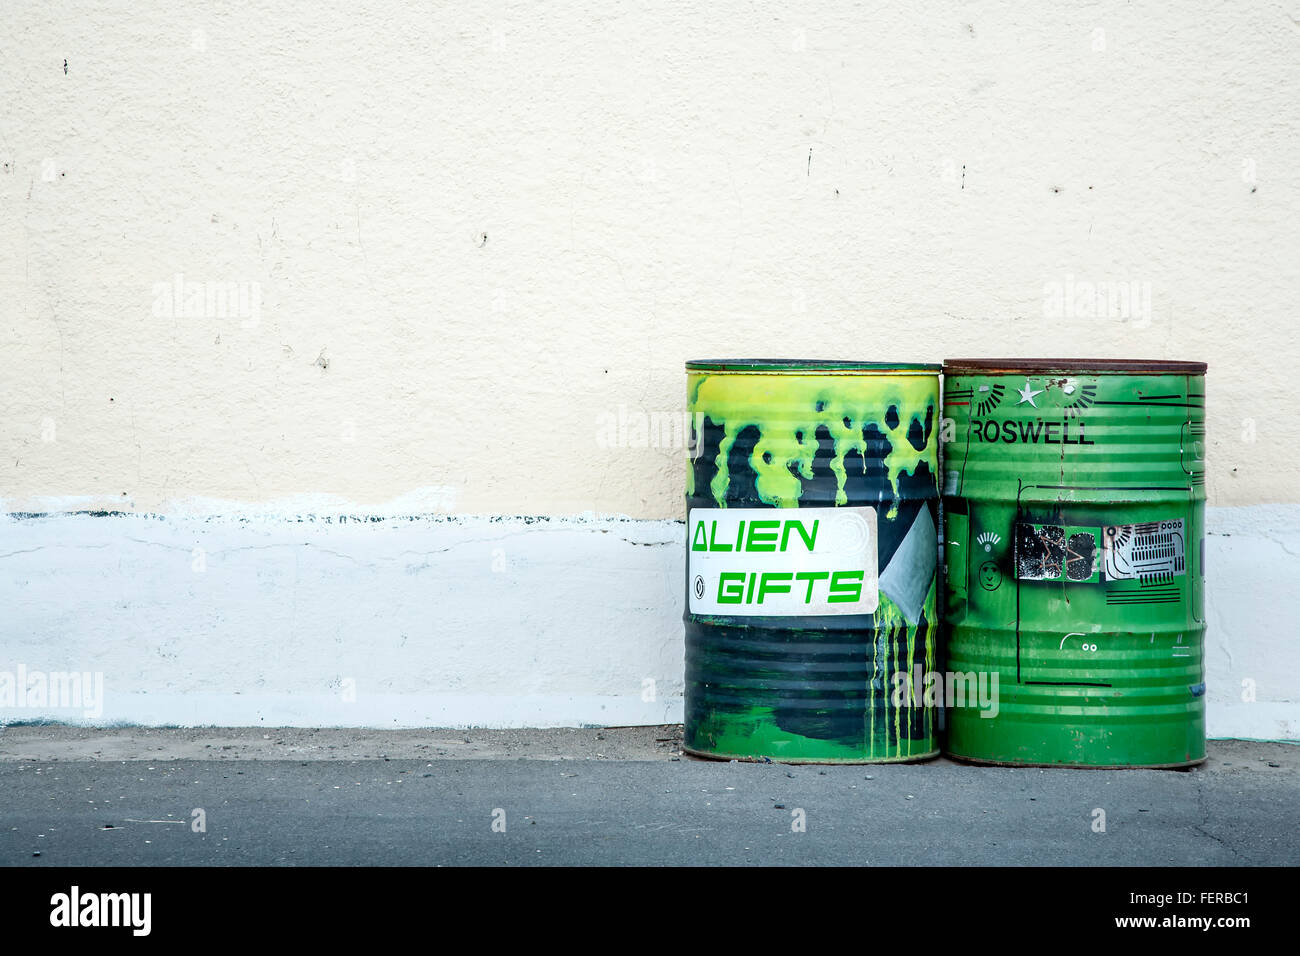 'Alien' garbage cans, Roswell, New Mexico USA - Stock Image